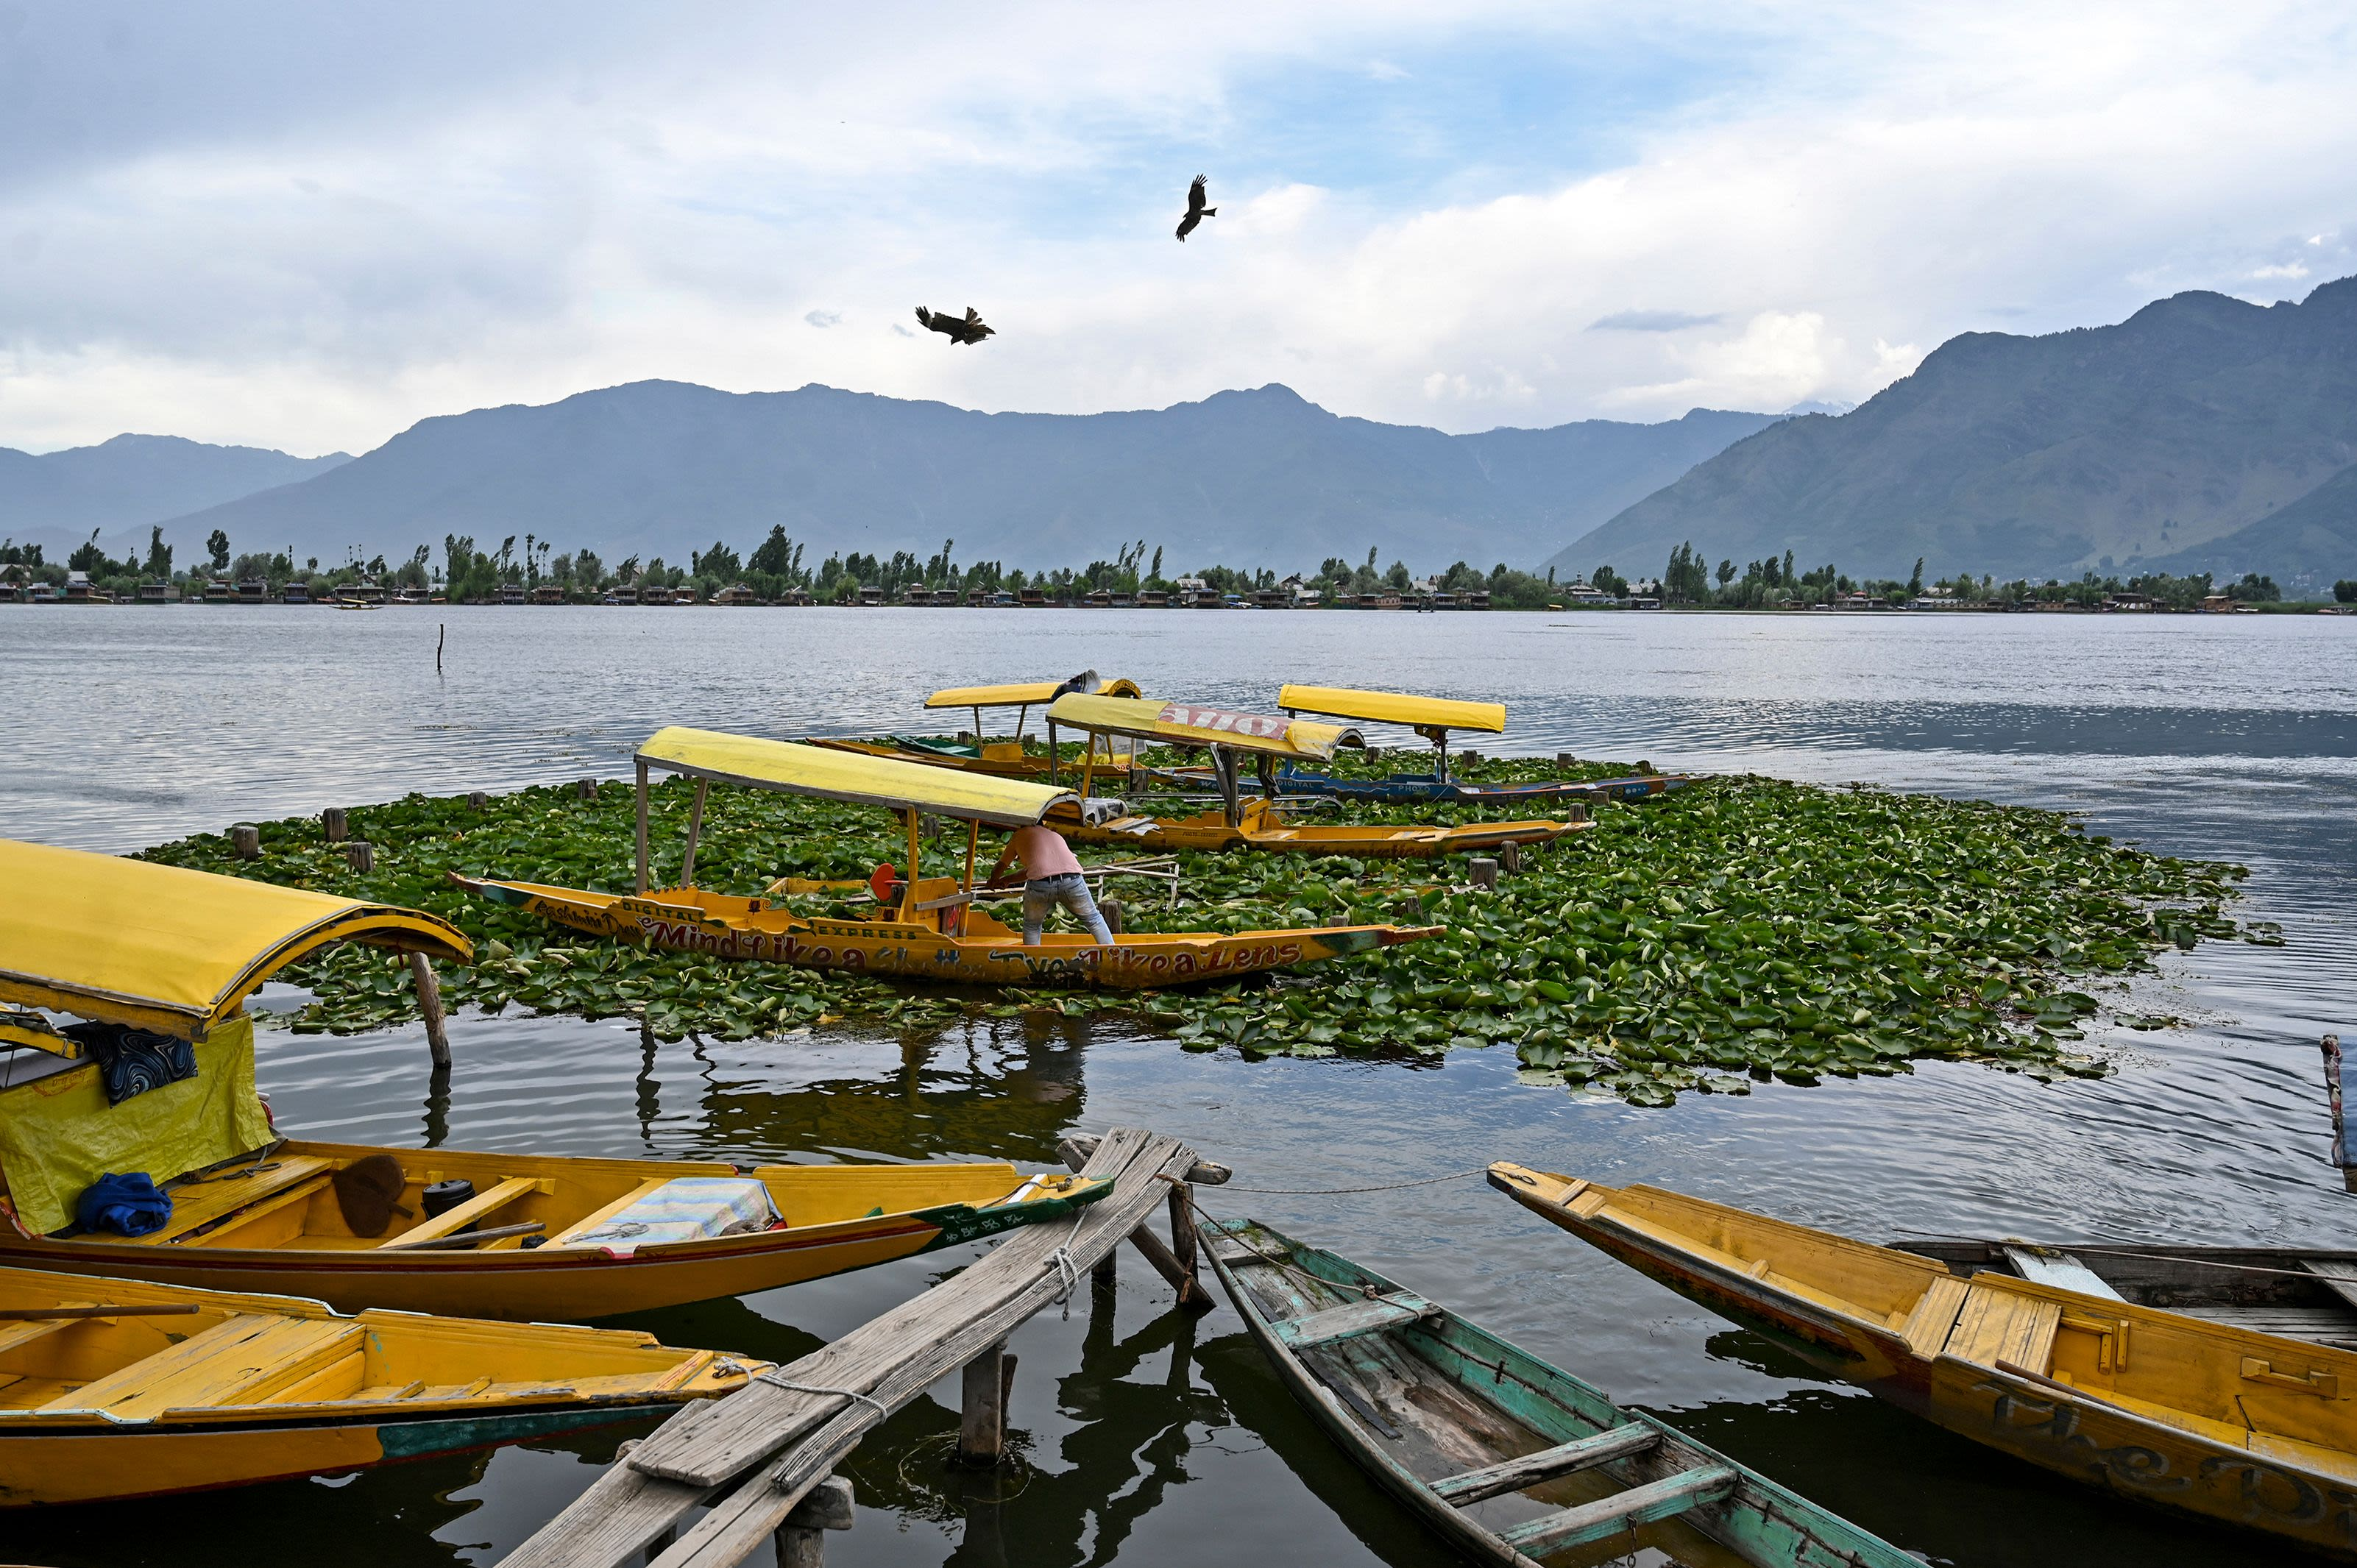 A Kashmiri boatman stands on his boat as he waits for customers in the Dal lake in Srinagar on June 26, 2019. (Tauseef MUSTAFA / AFP via Getty Images)